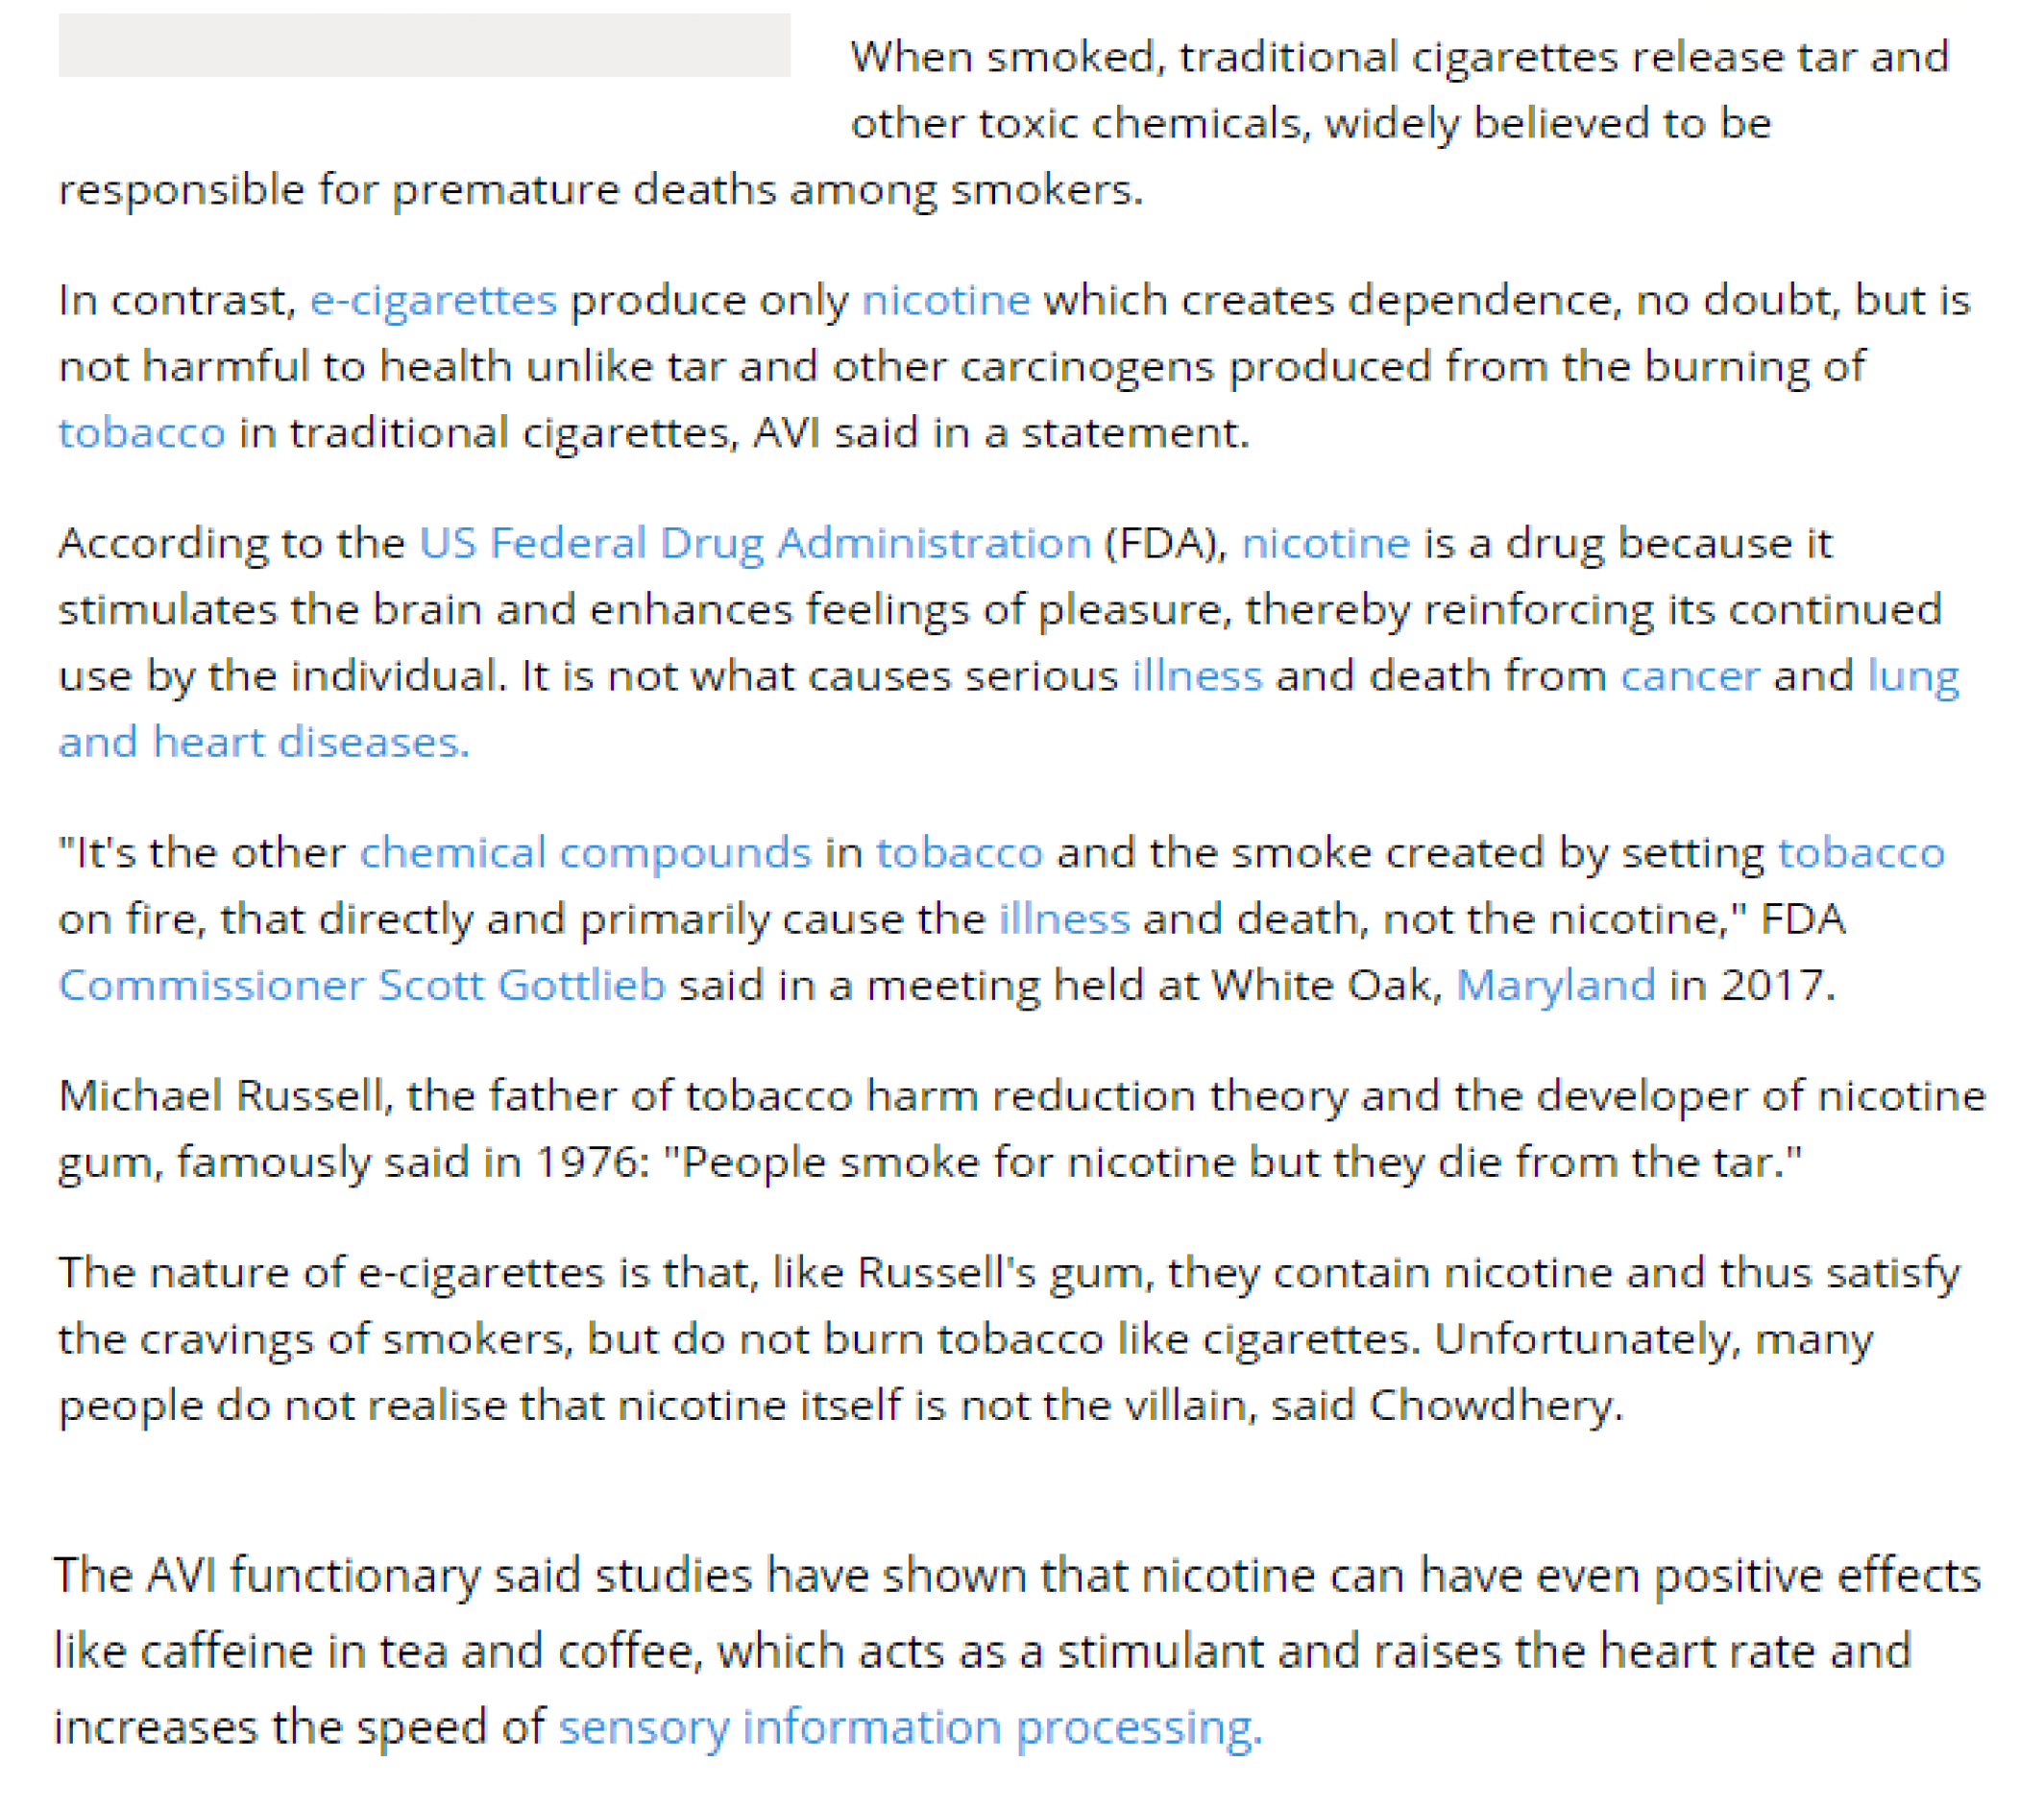 Fathers Nicotine Use Can Cause >> Nicotine Not To Be Blamed For Smoking Related Death Avi